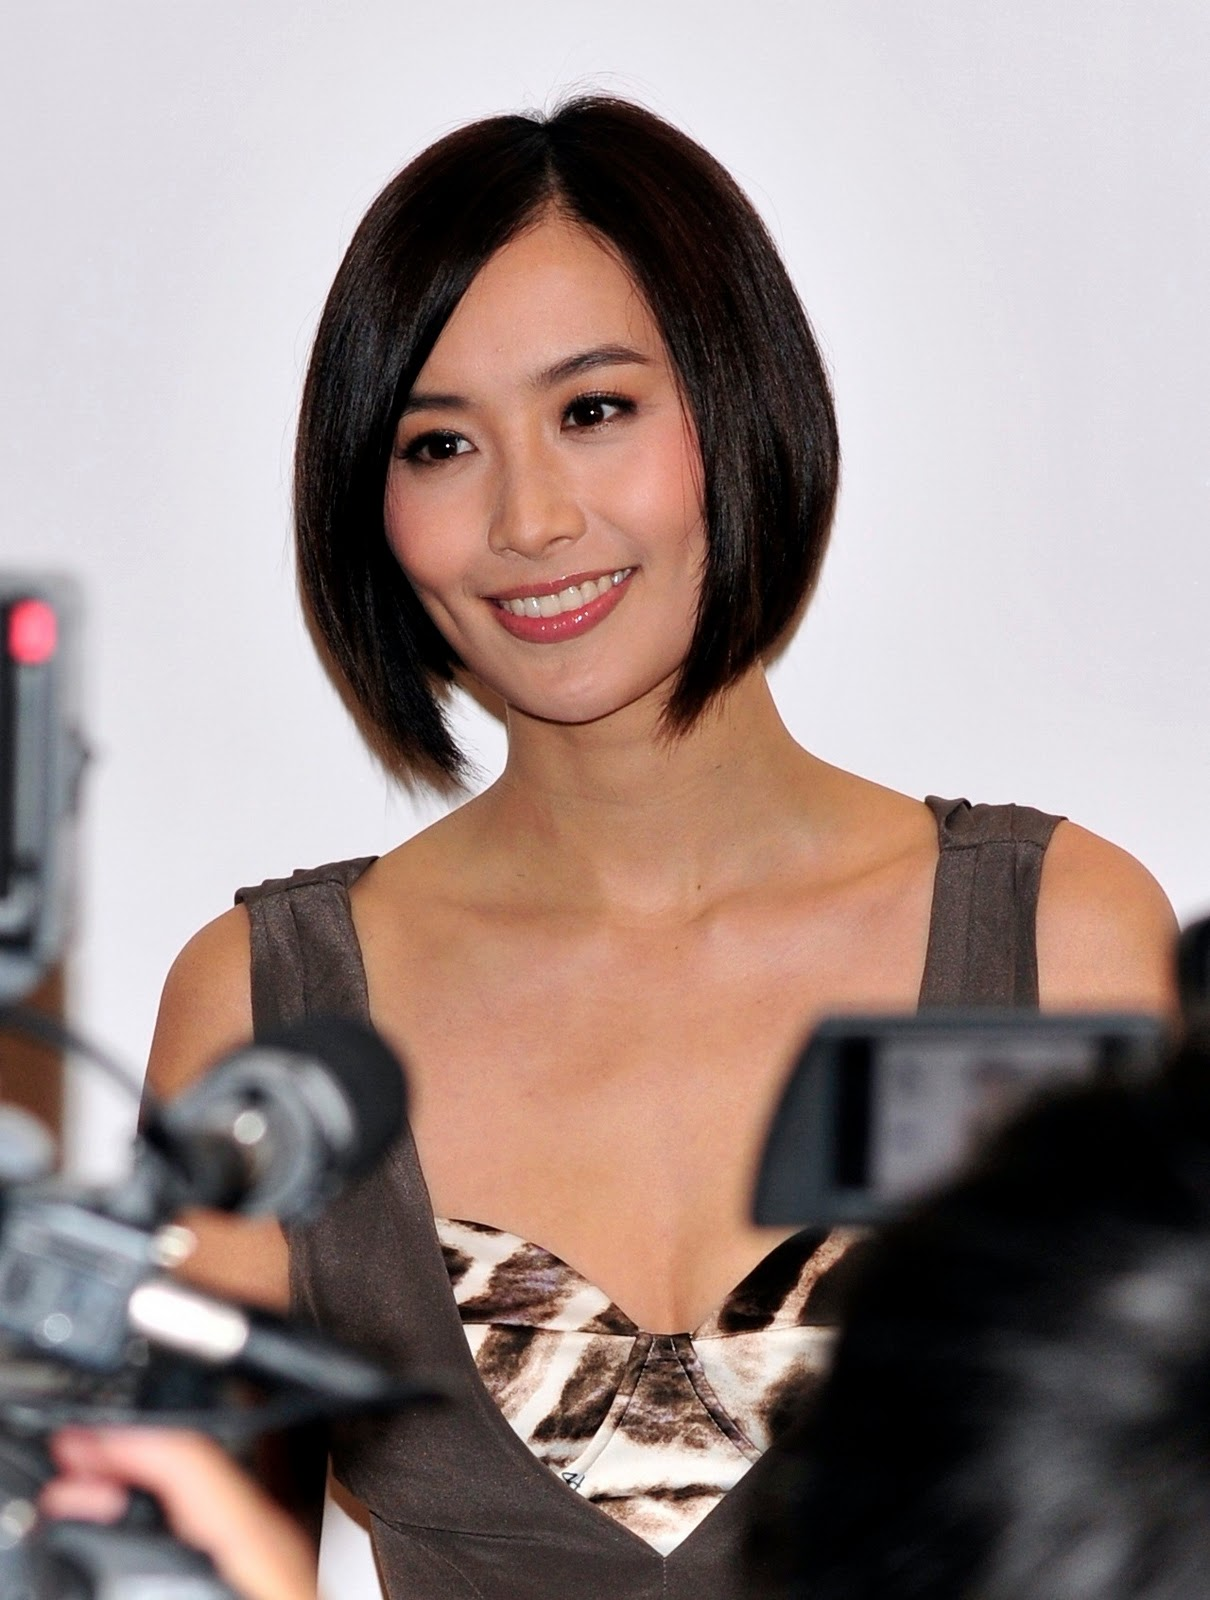 fala chen new look for new drama kay s entertainment saturday 19 2011